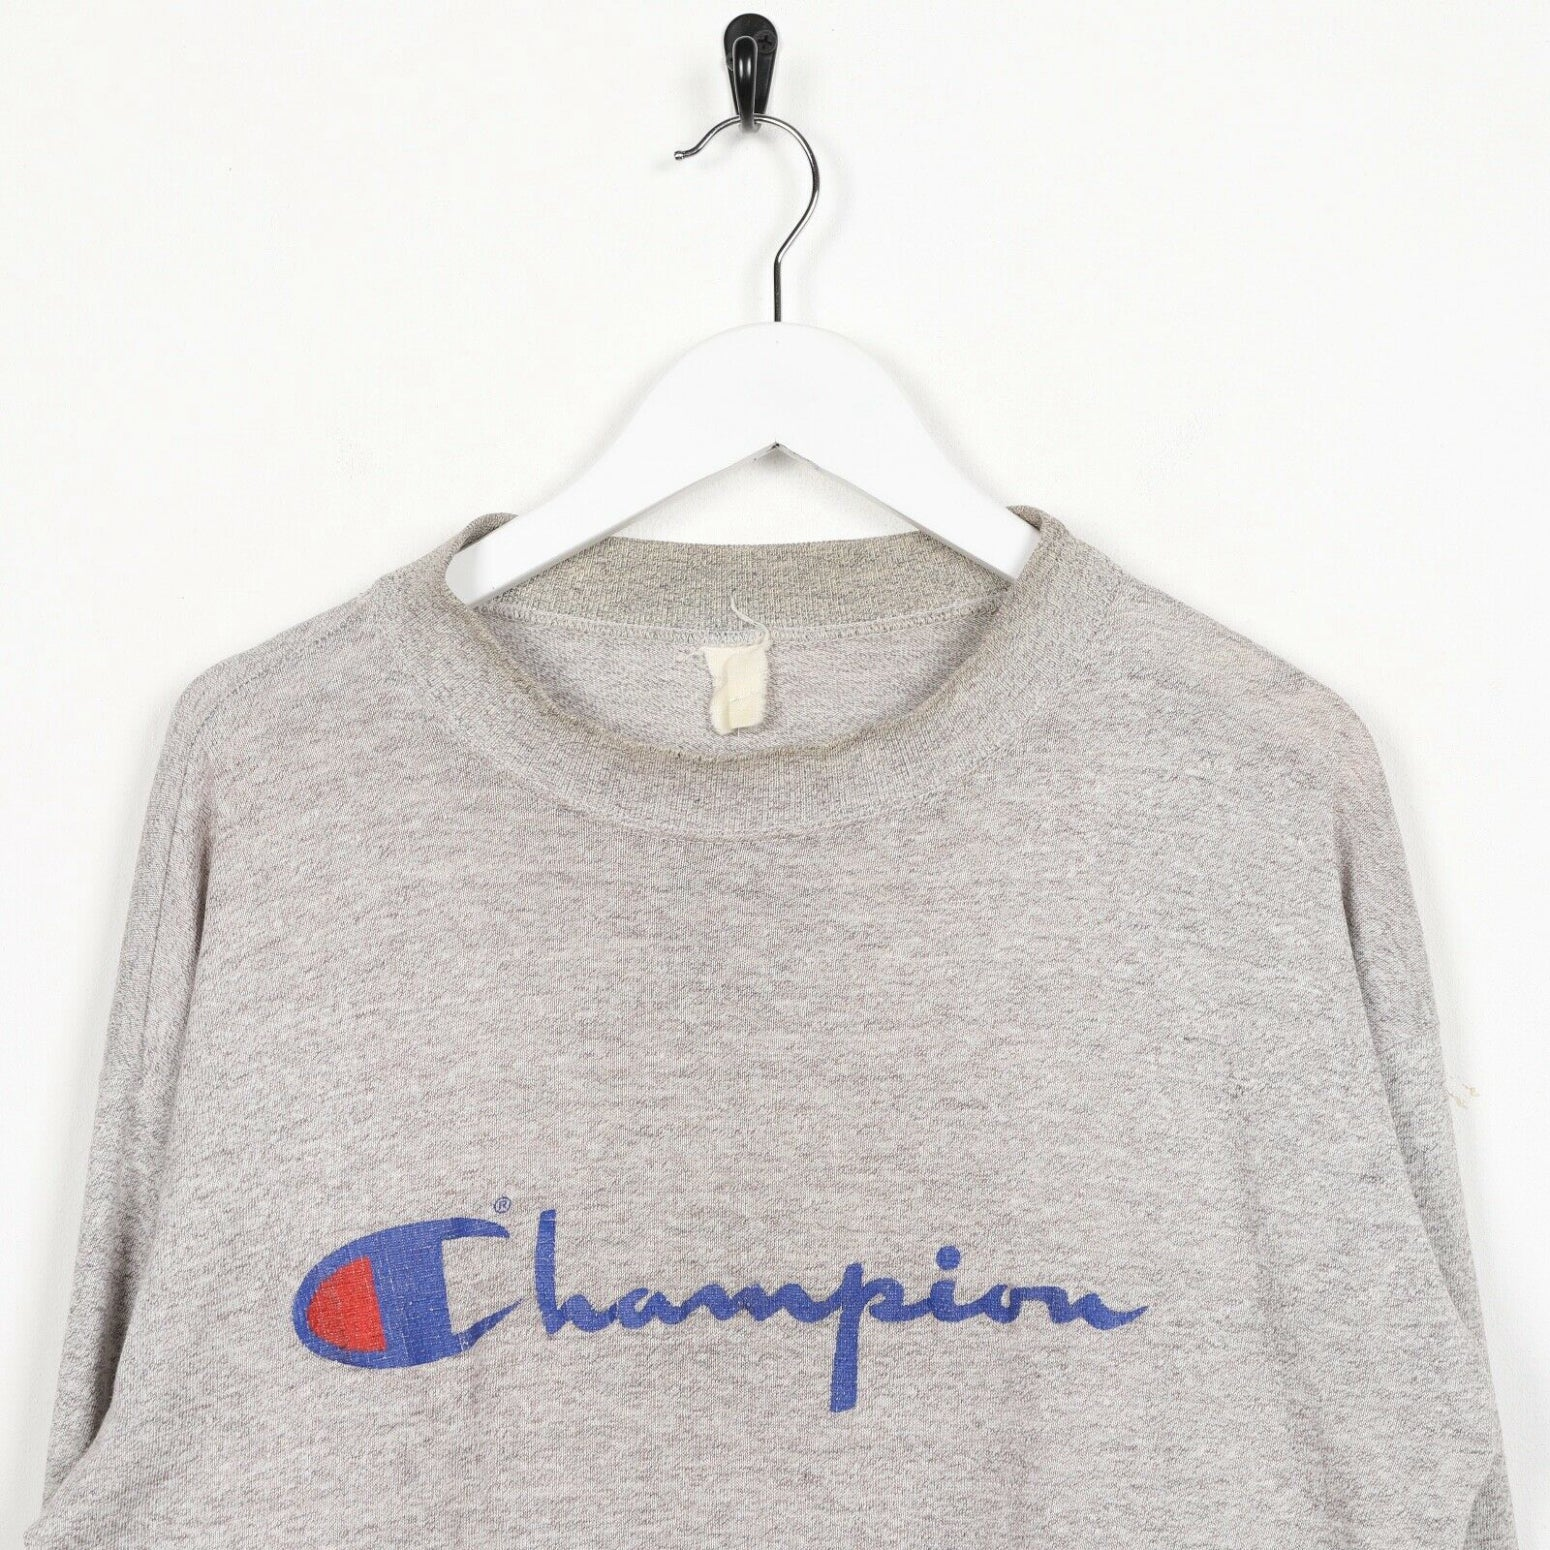 Vintage 90s CHAMPION Central Spell Out Logo Sweatshirt Jumper Grey | Small S